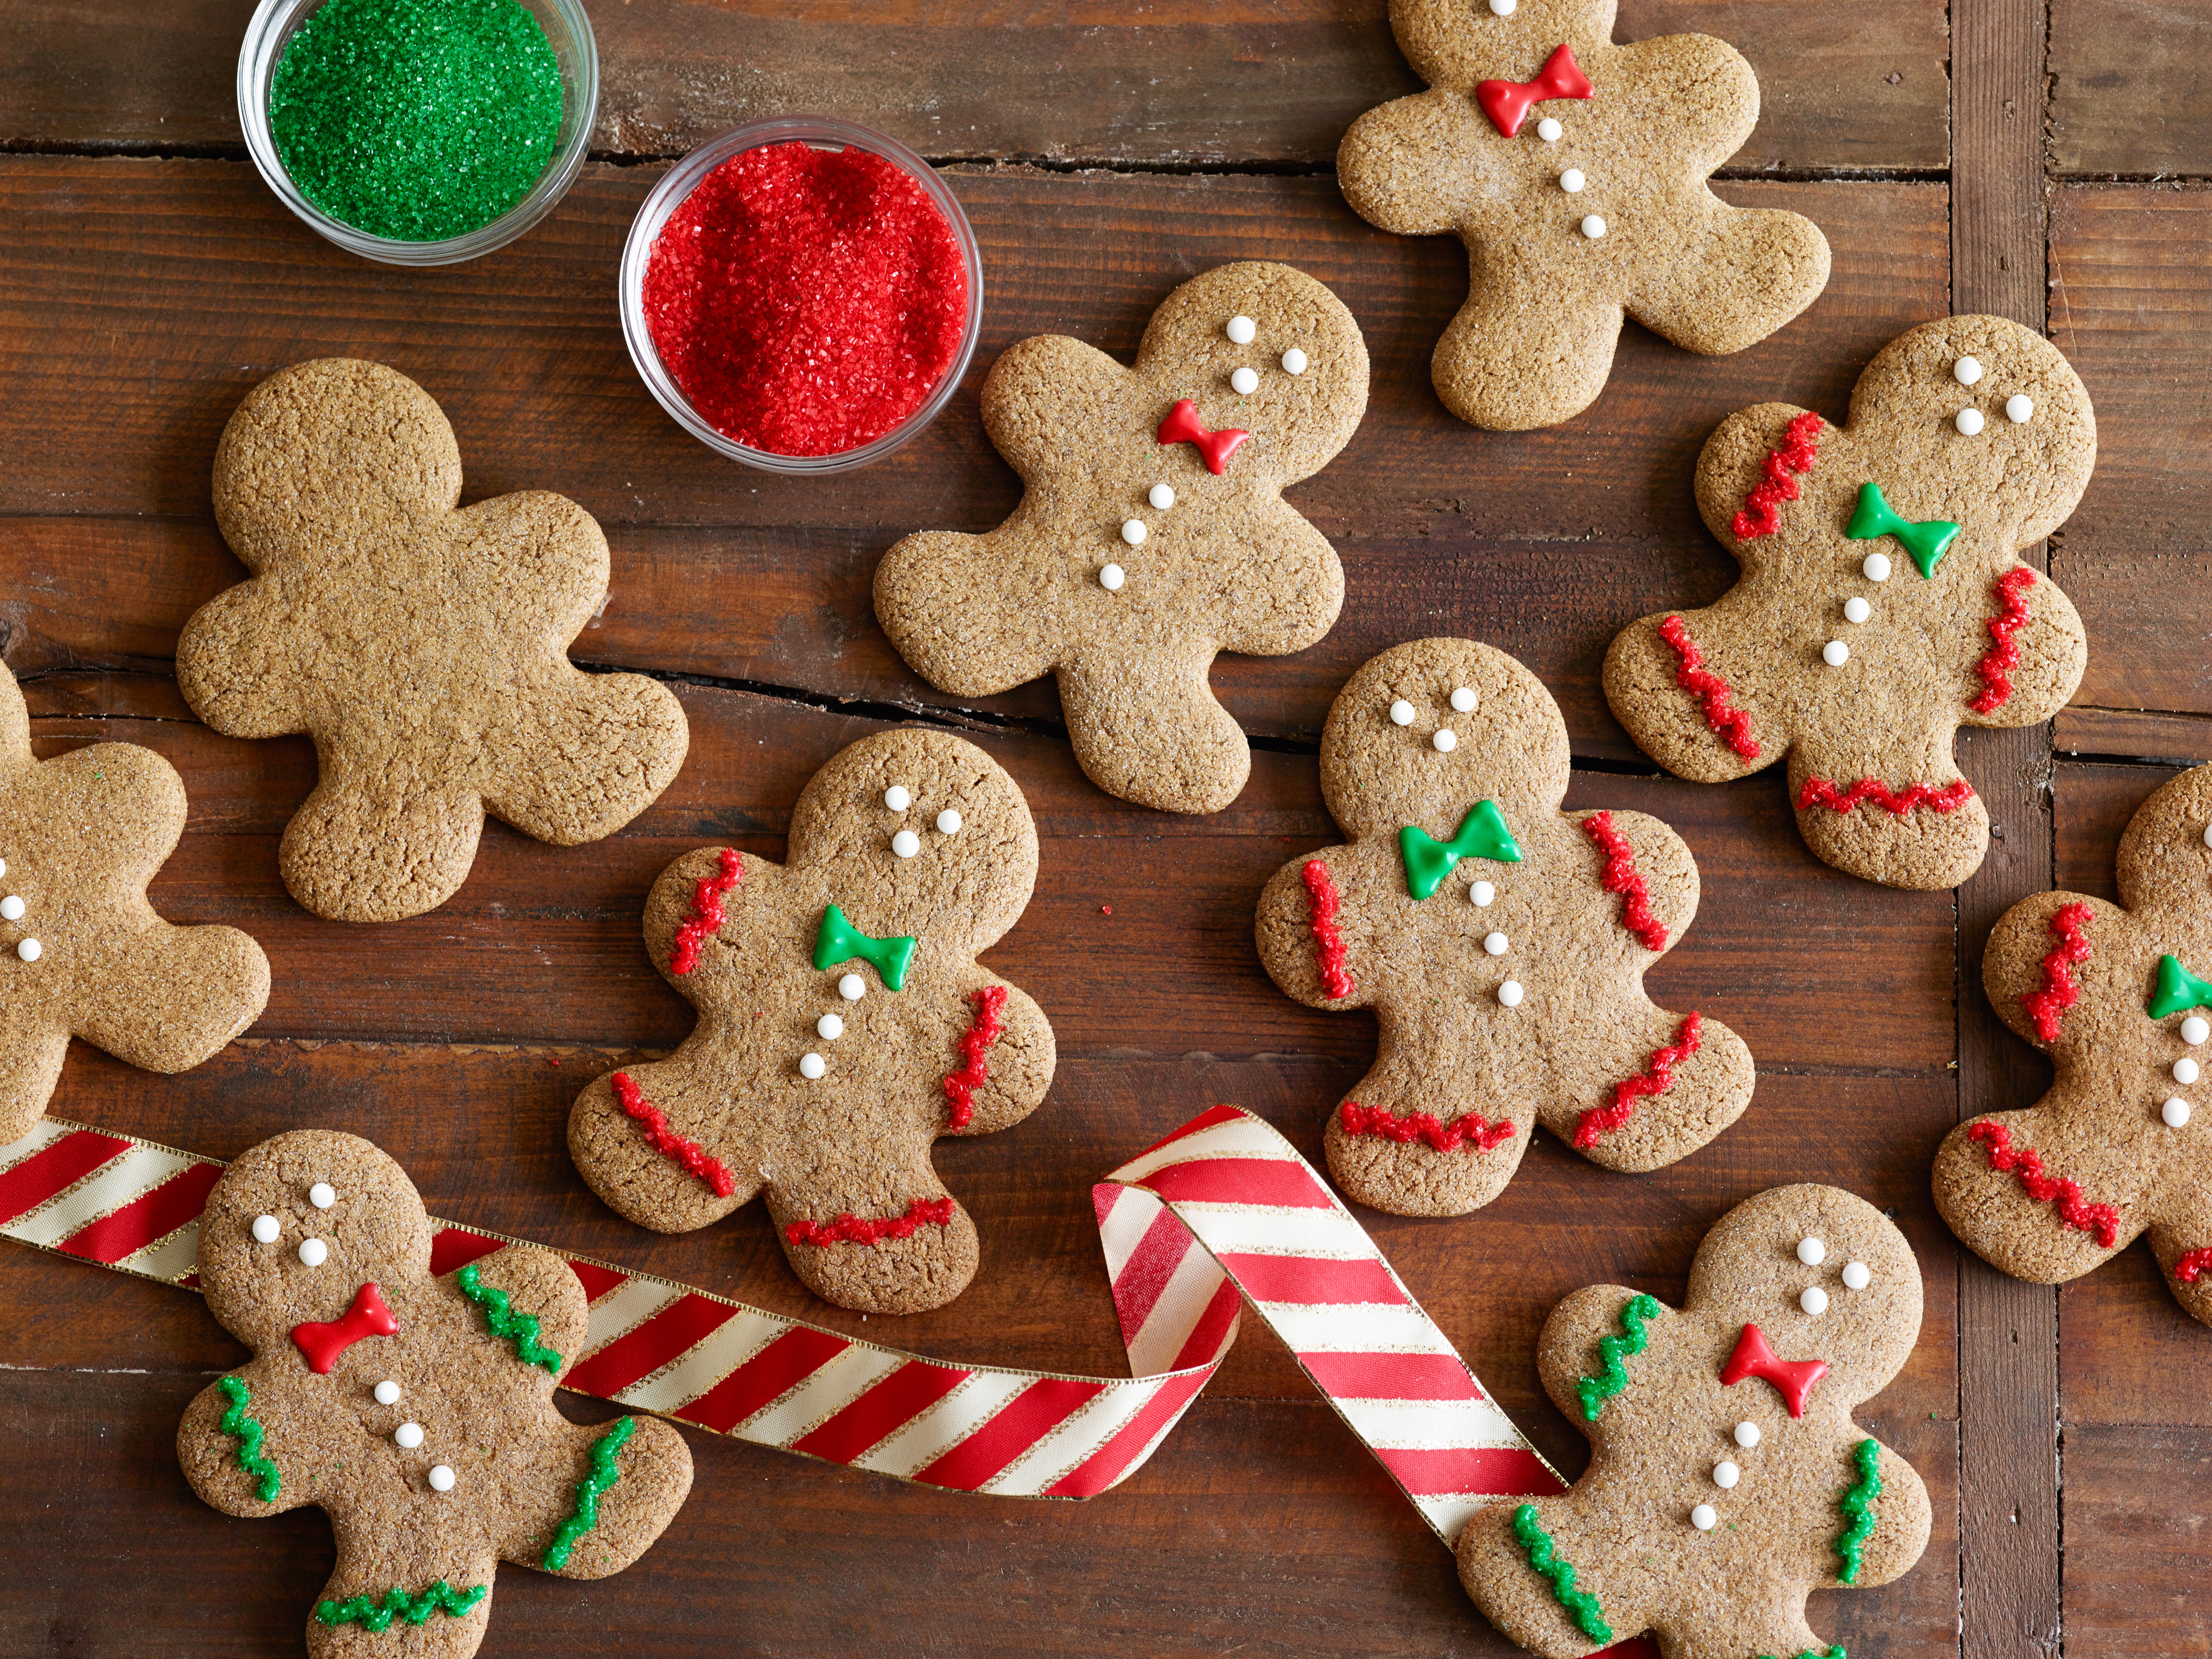 This is a graphic of Adorable Ginger Bread Images